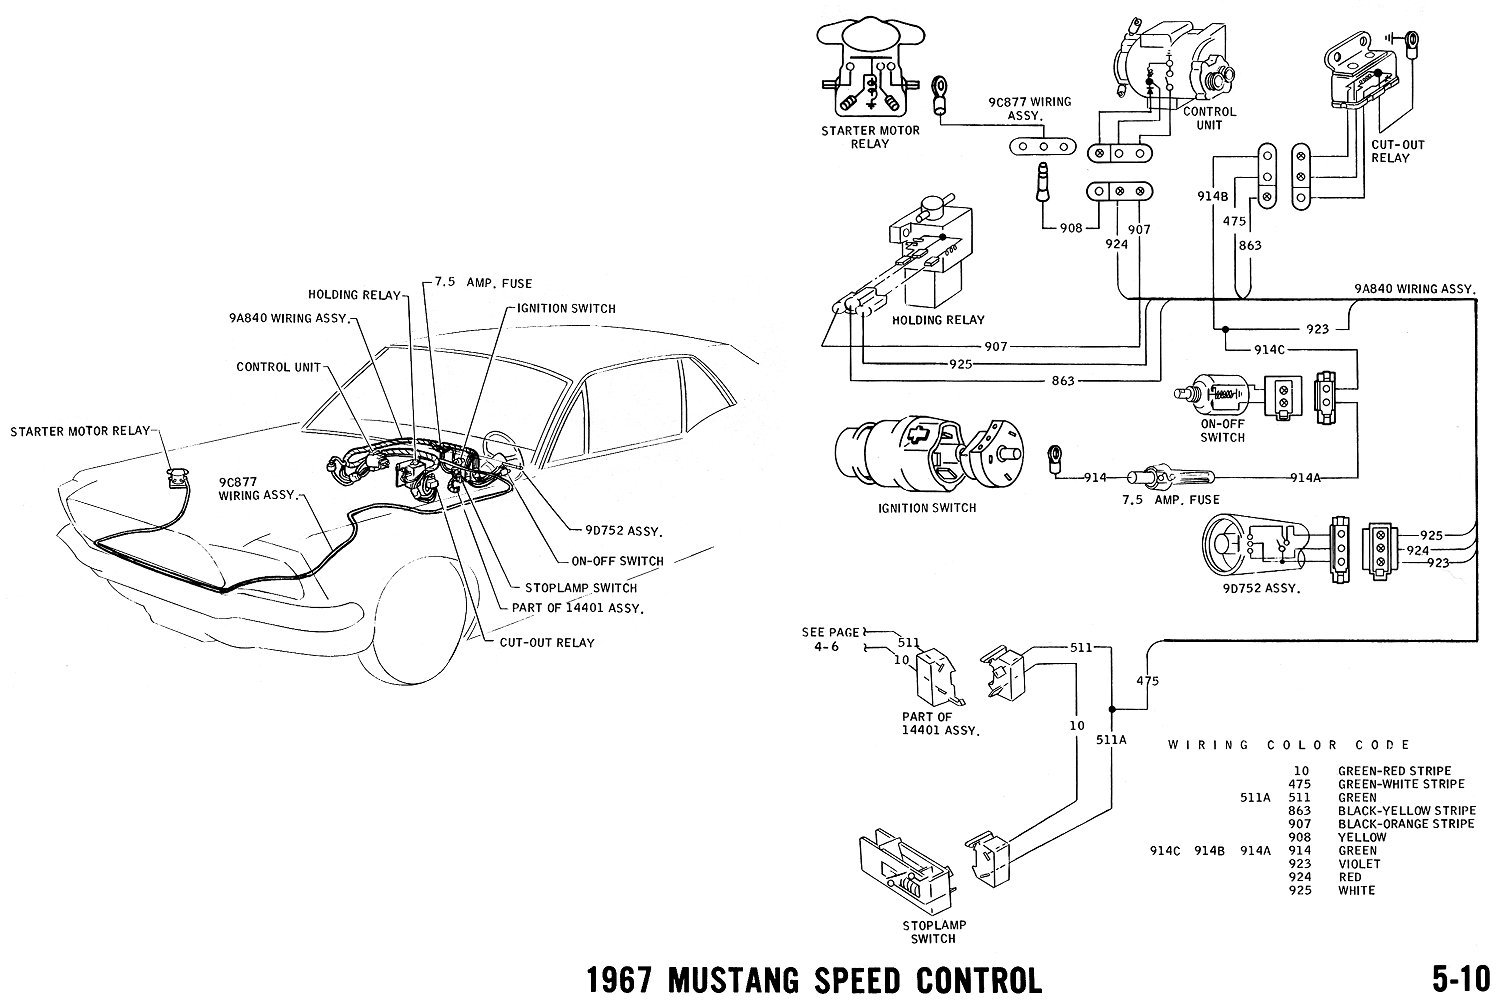 hight resolution of 1967 mustang fuse diagram wiring diagram set 1967 mustang fuse wiring diagram wiring diagram centre 1967